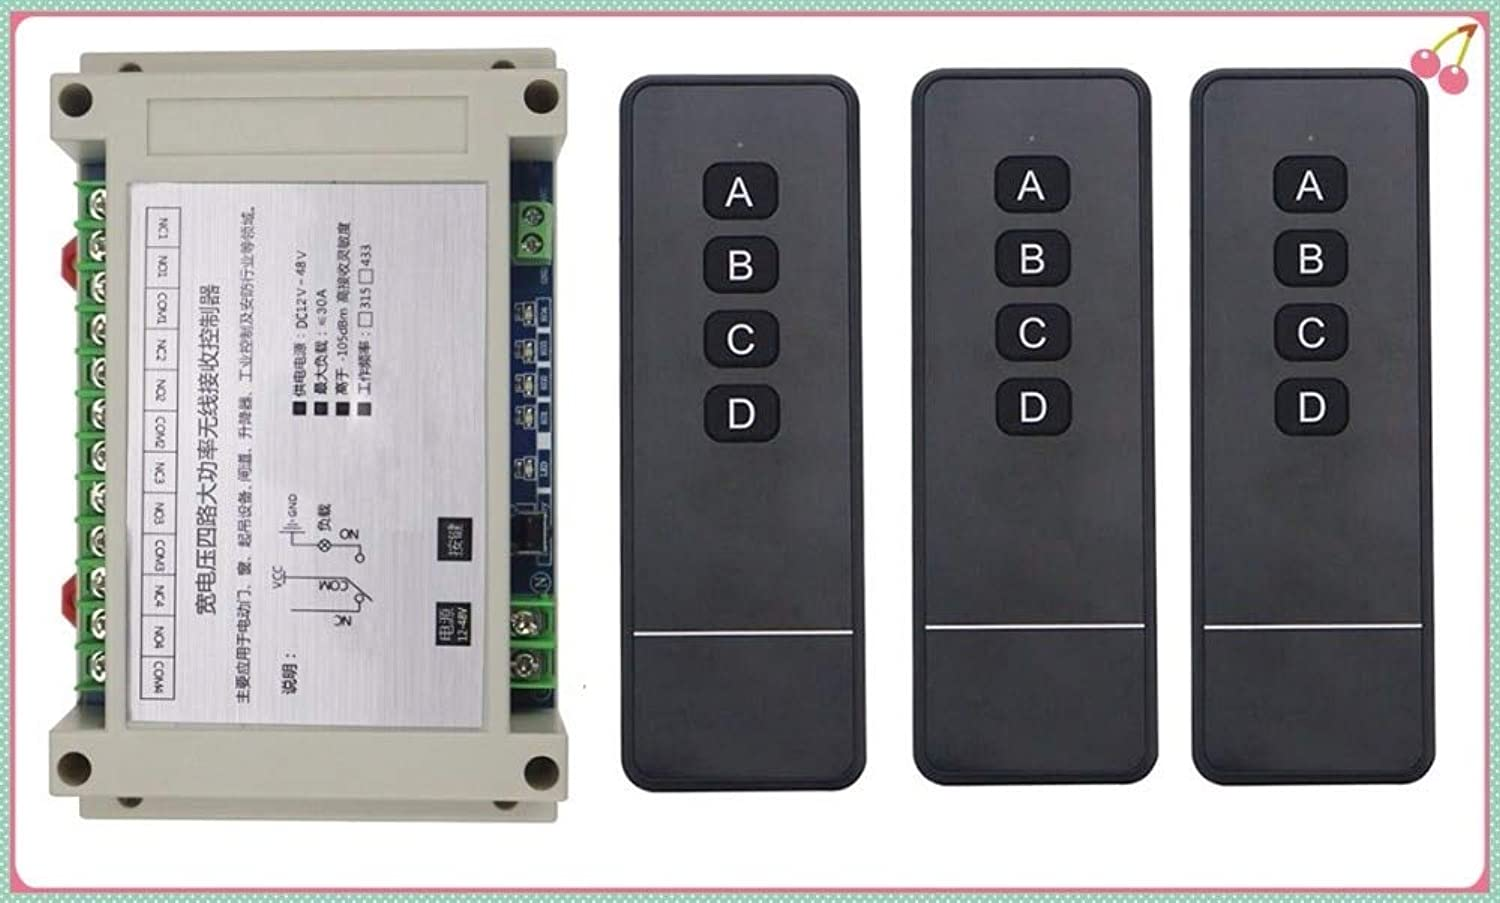 DC12V 24V 36V 48V 4CH RF Wireless Remote Control Relay Switch Security System Garage Doors, Electric Doors Window lamp 3Remote